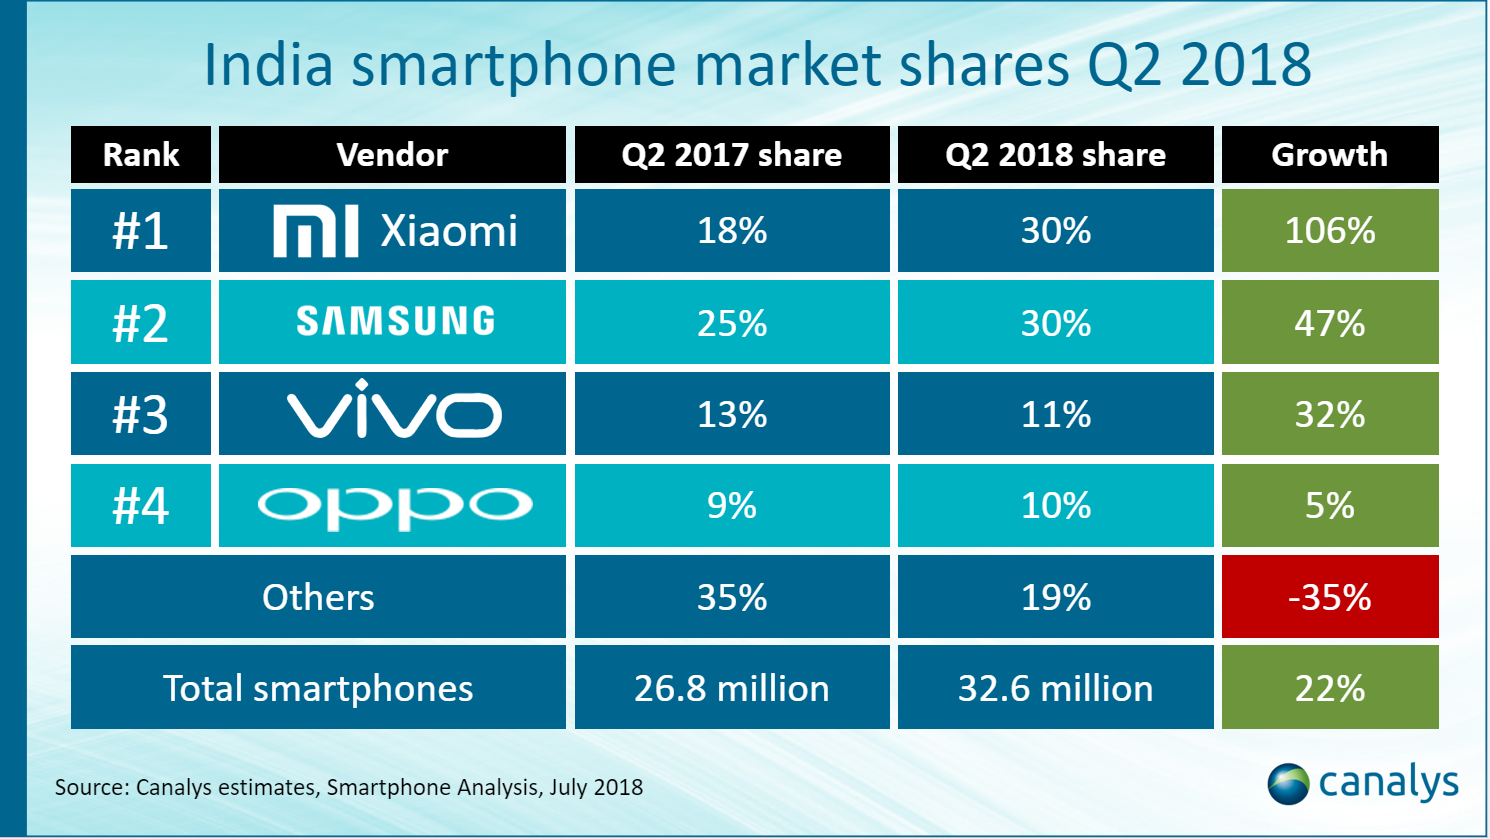 Top smartphone vendors in India Q2 2018